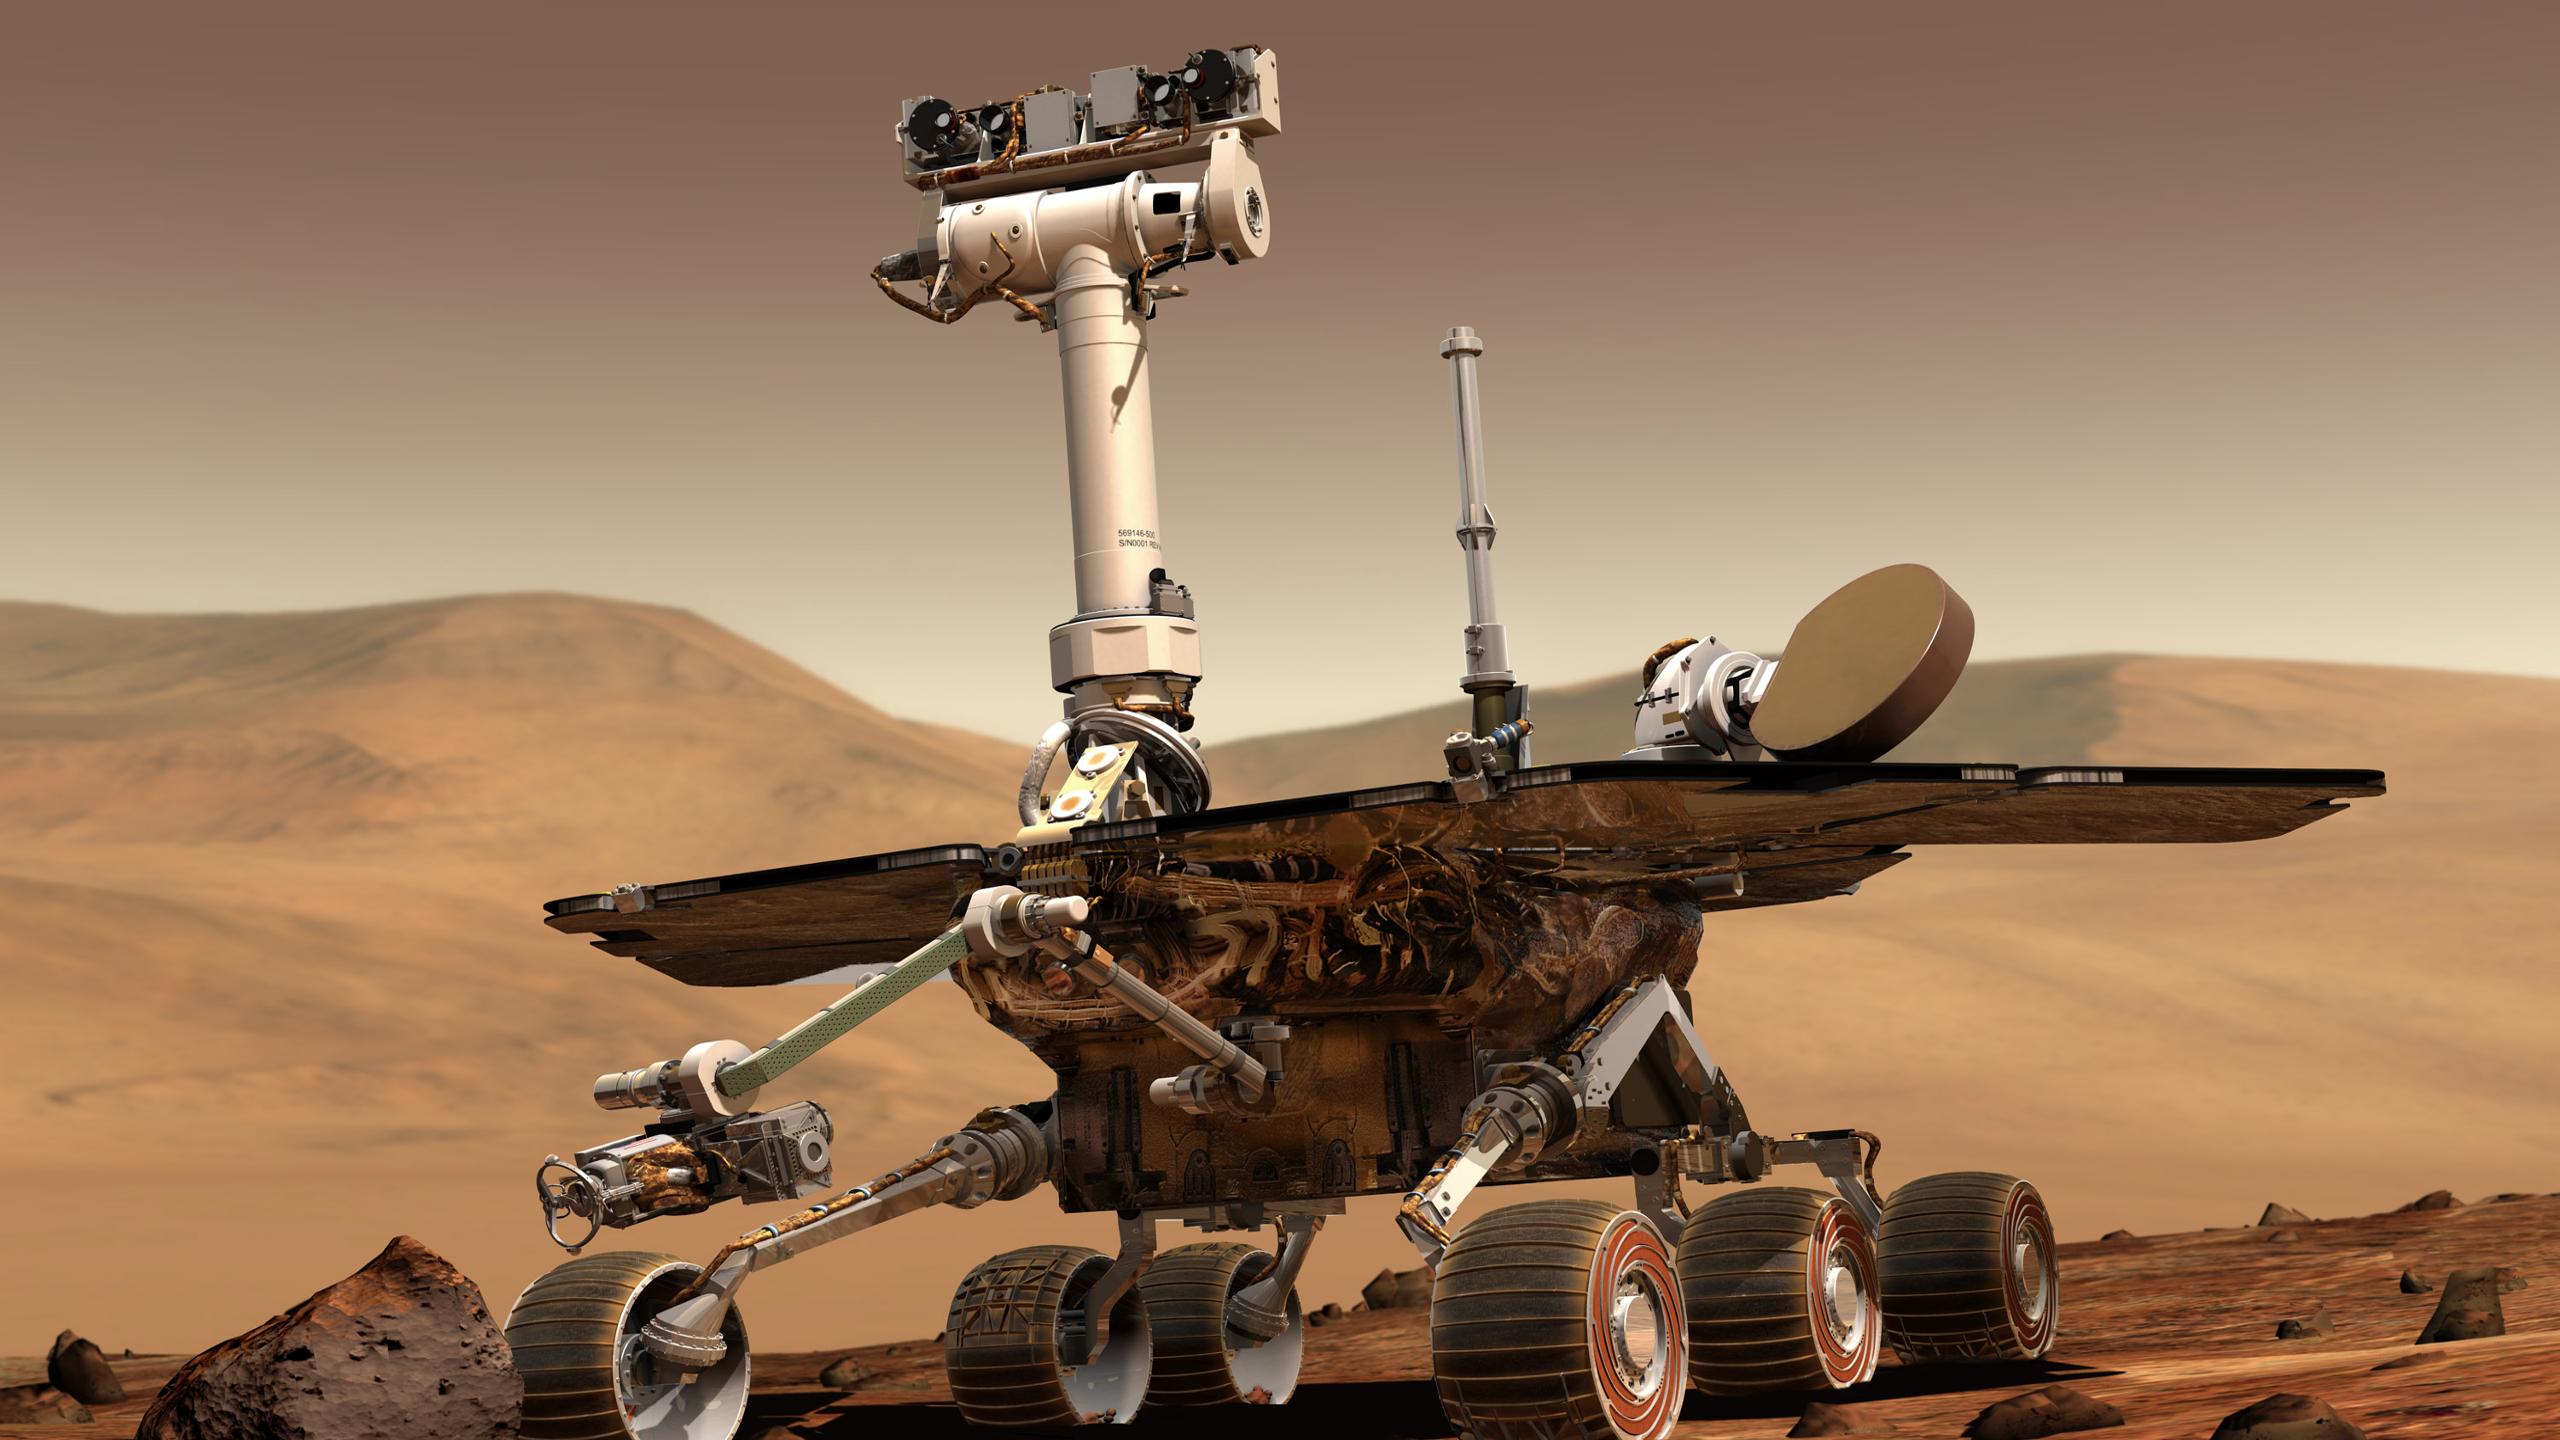 NASA Opportunity Rover [2560x1440] wallpapers 2560x1440